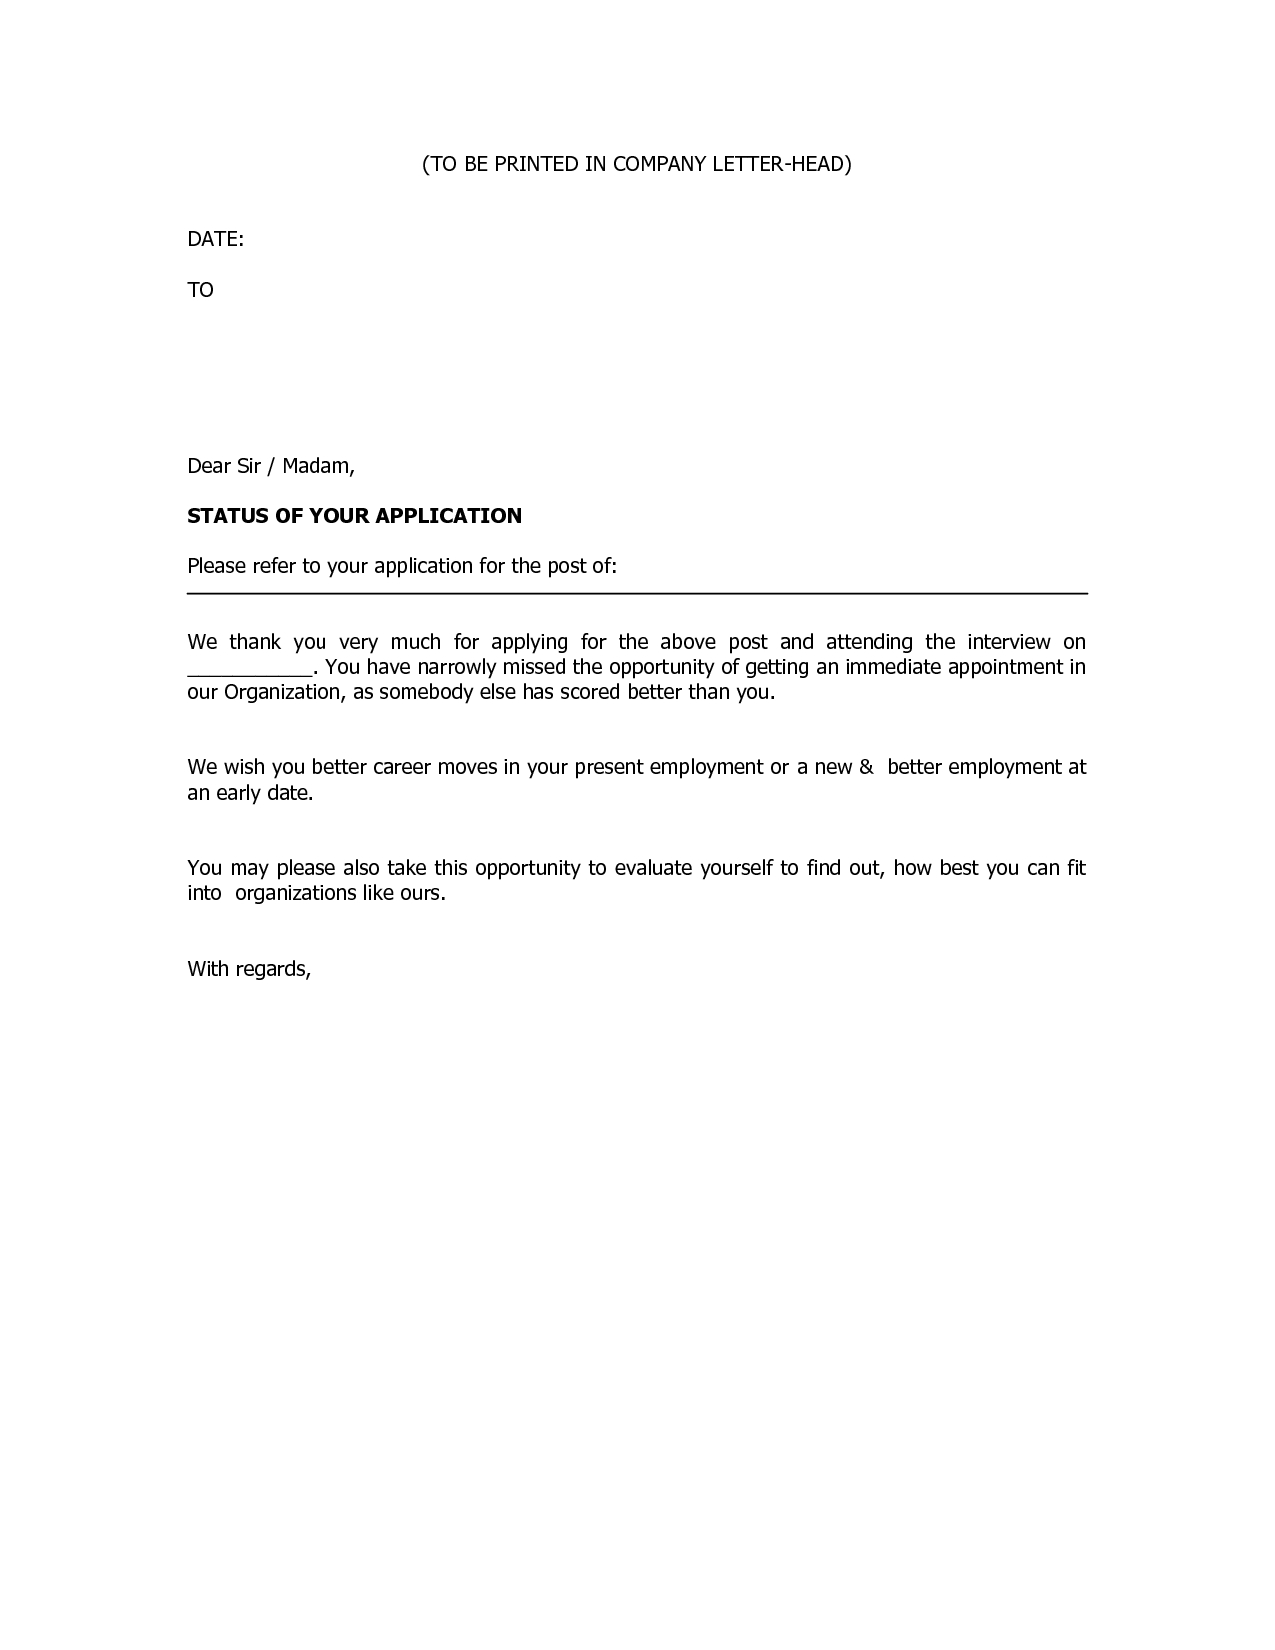 Rejection Letter Template after Interview - Business Rejection Letter Rejection Letters are Usually Addressed